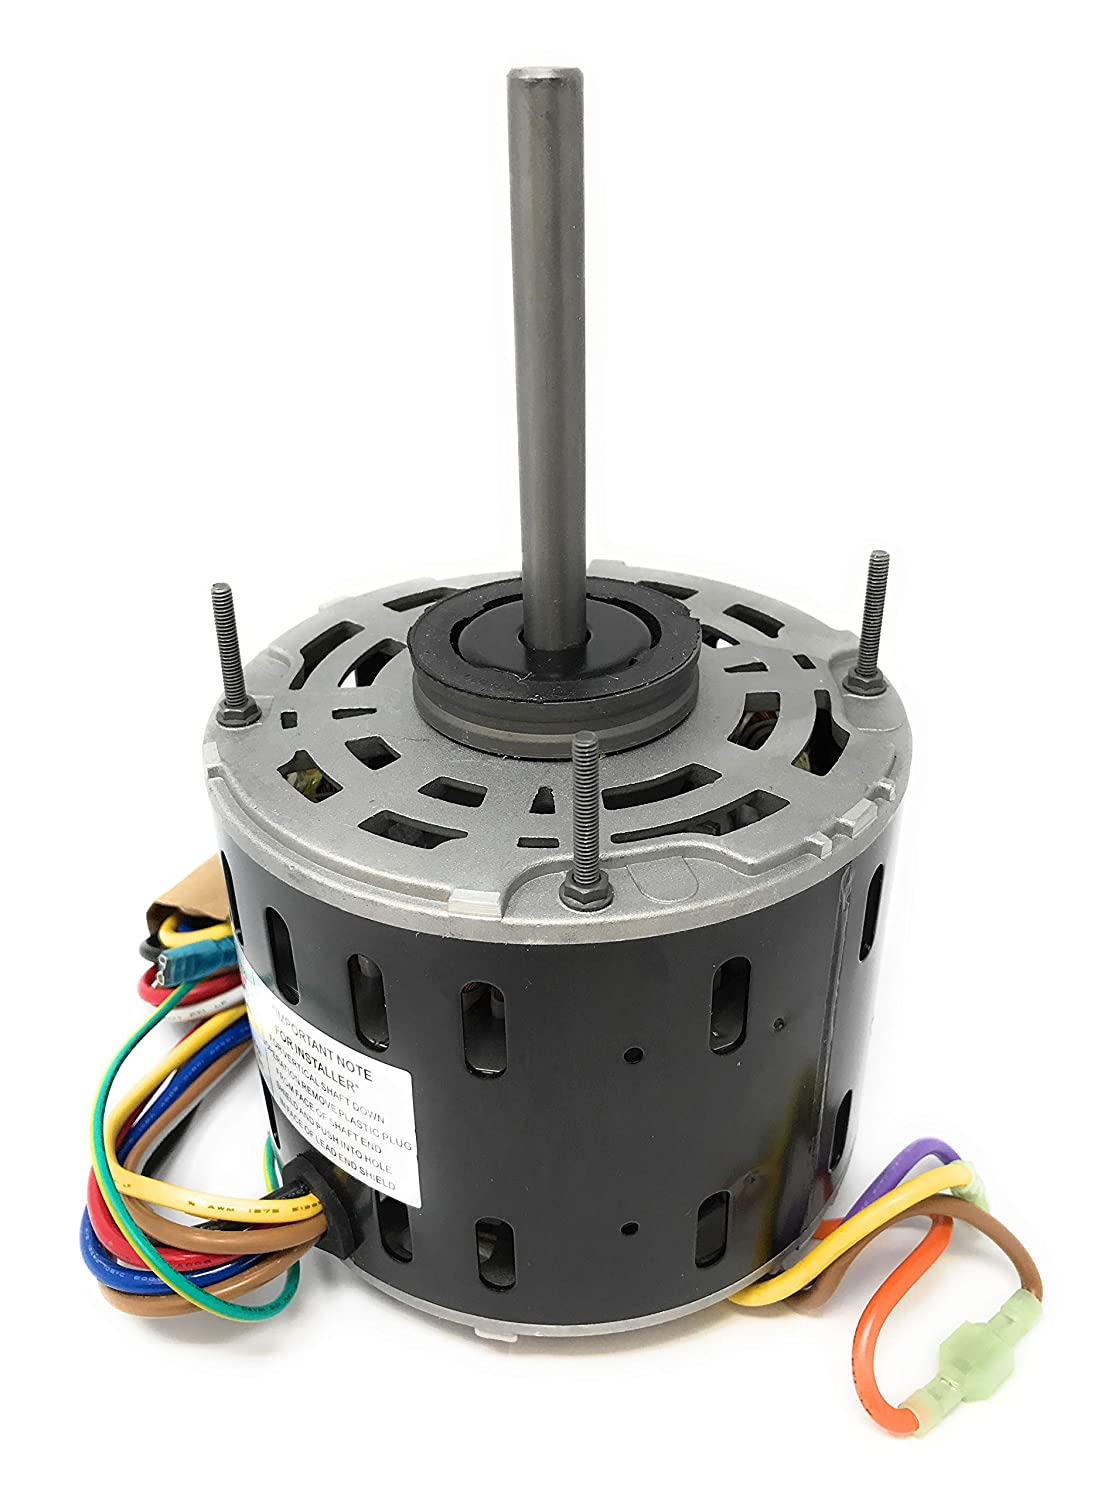 A1586, 1/3HP 230V Air Handler Motor, 1075RPM, 2.7AMP